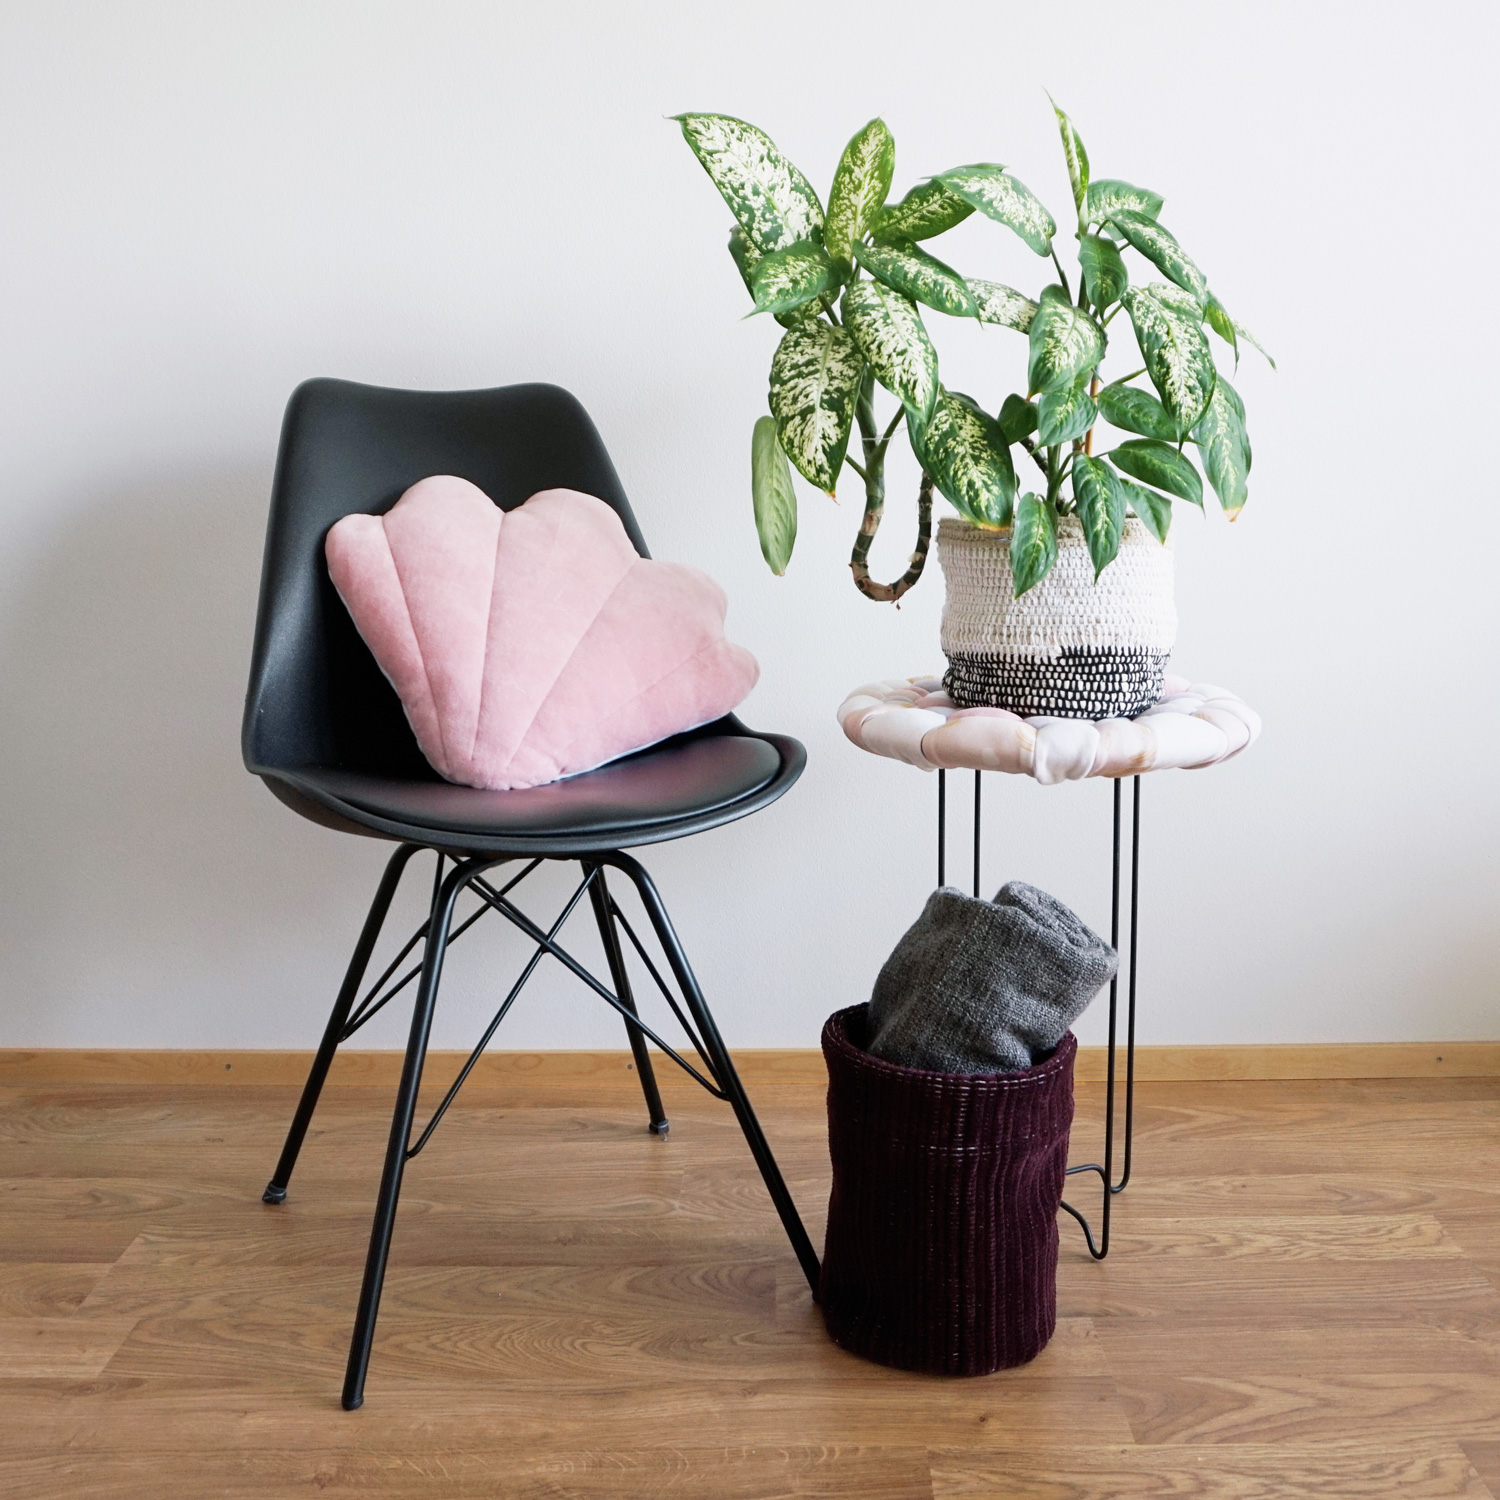 A quirky soft textured side table with a stone pebble-like surface. Perfect as a plant stand or to keep a stack of books next to your sofa or bed.